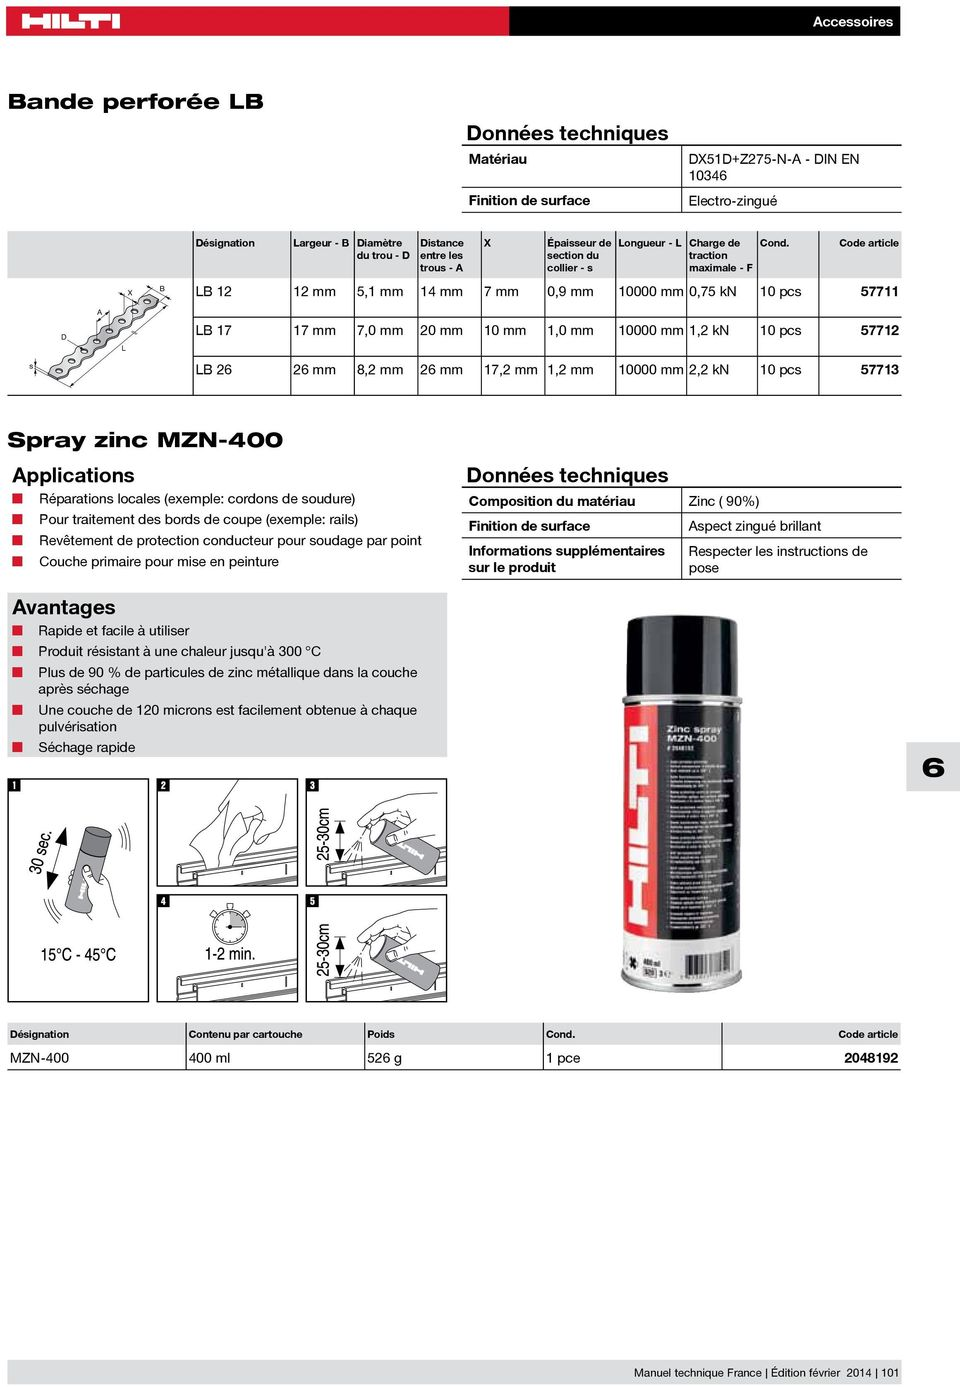 10 pcs 57713 Spray zinc MZN-400 Réparations locales (exemple: cordons de soudure) Pour traitement des bords de coupe (exemple: rails) Revêtement de protection conducteur pour soudage par point Couche